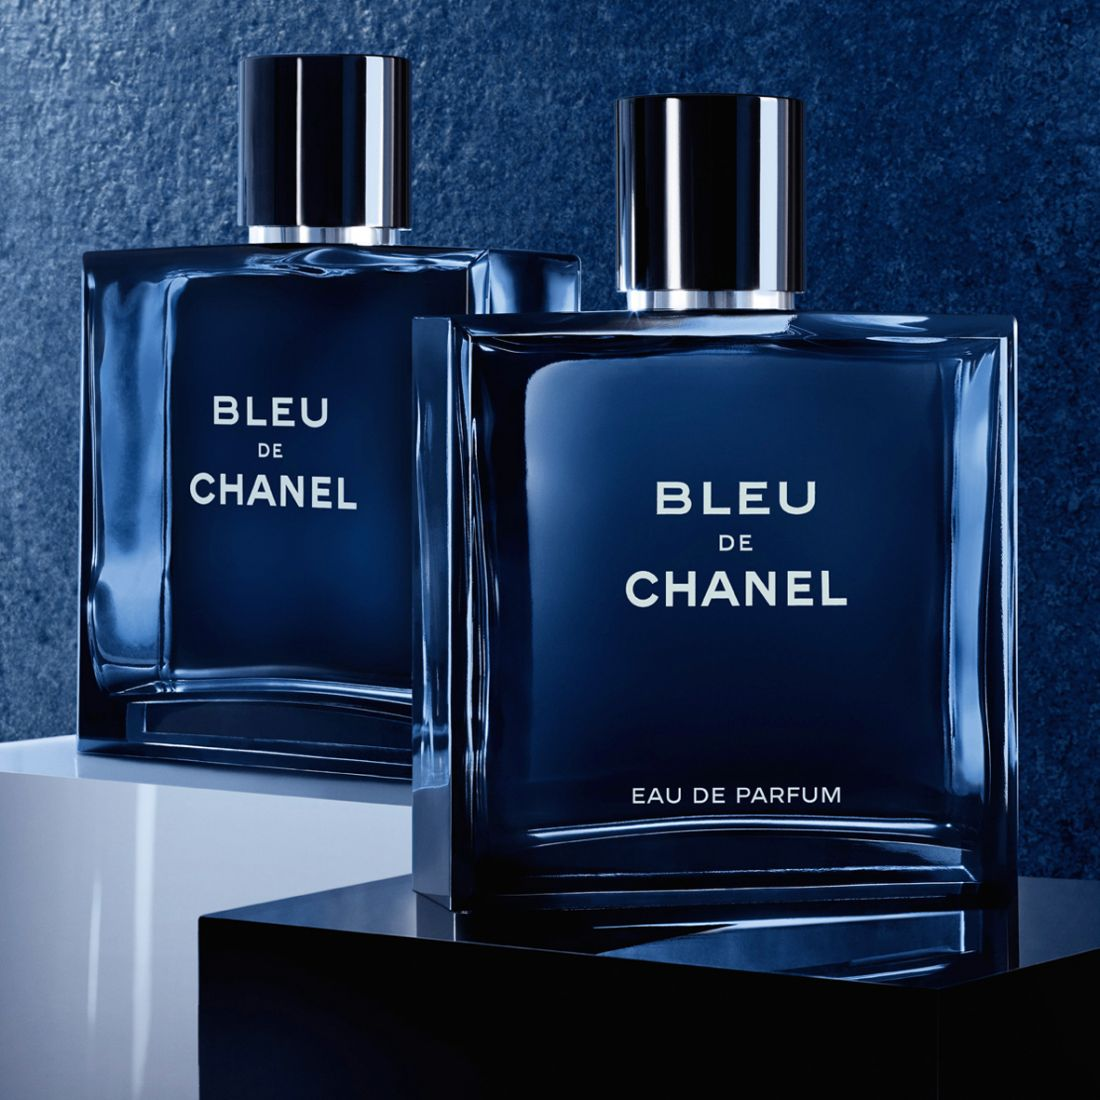 Chanel - Bleu De Chanel, 50 ml